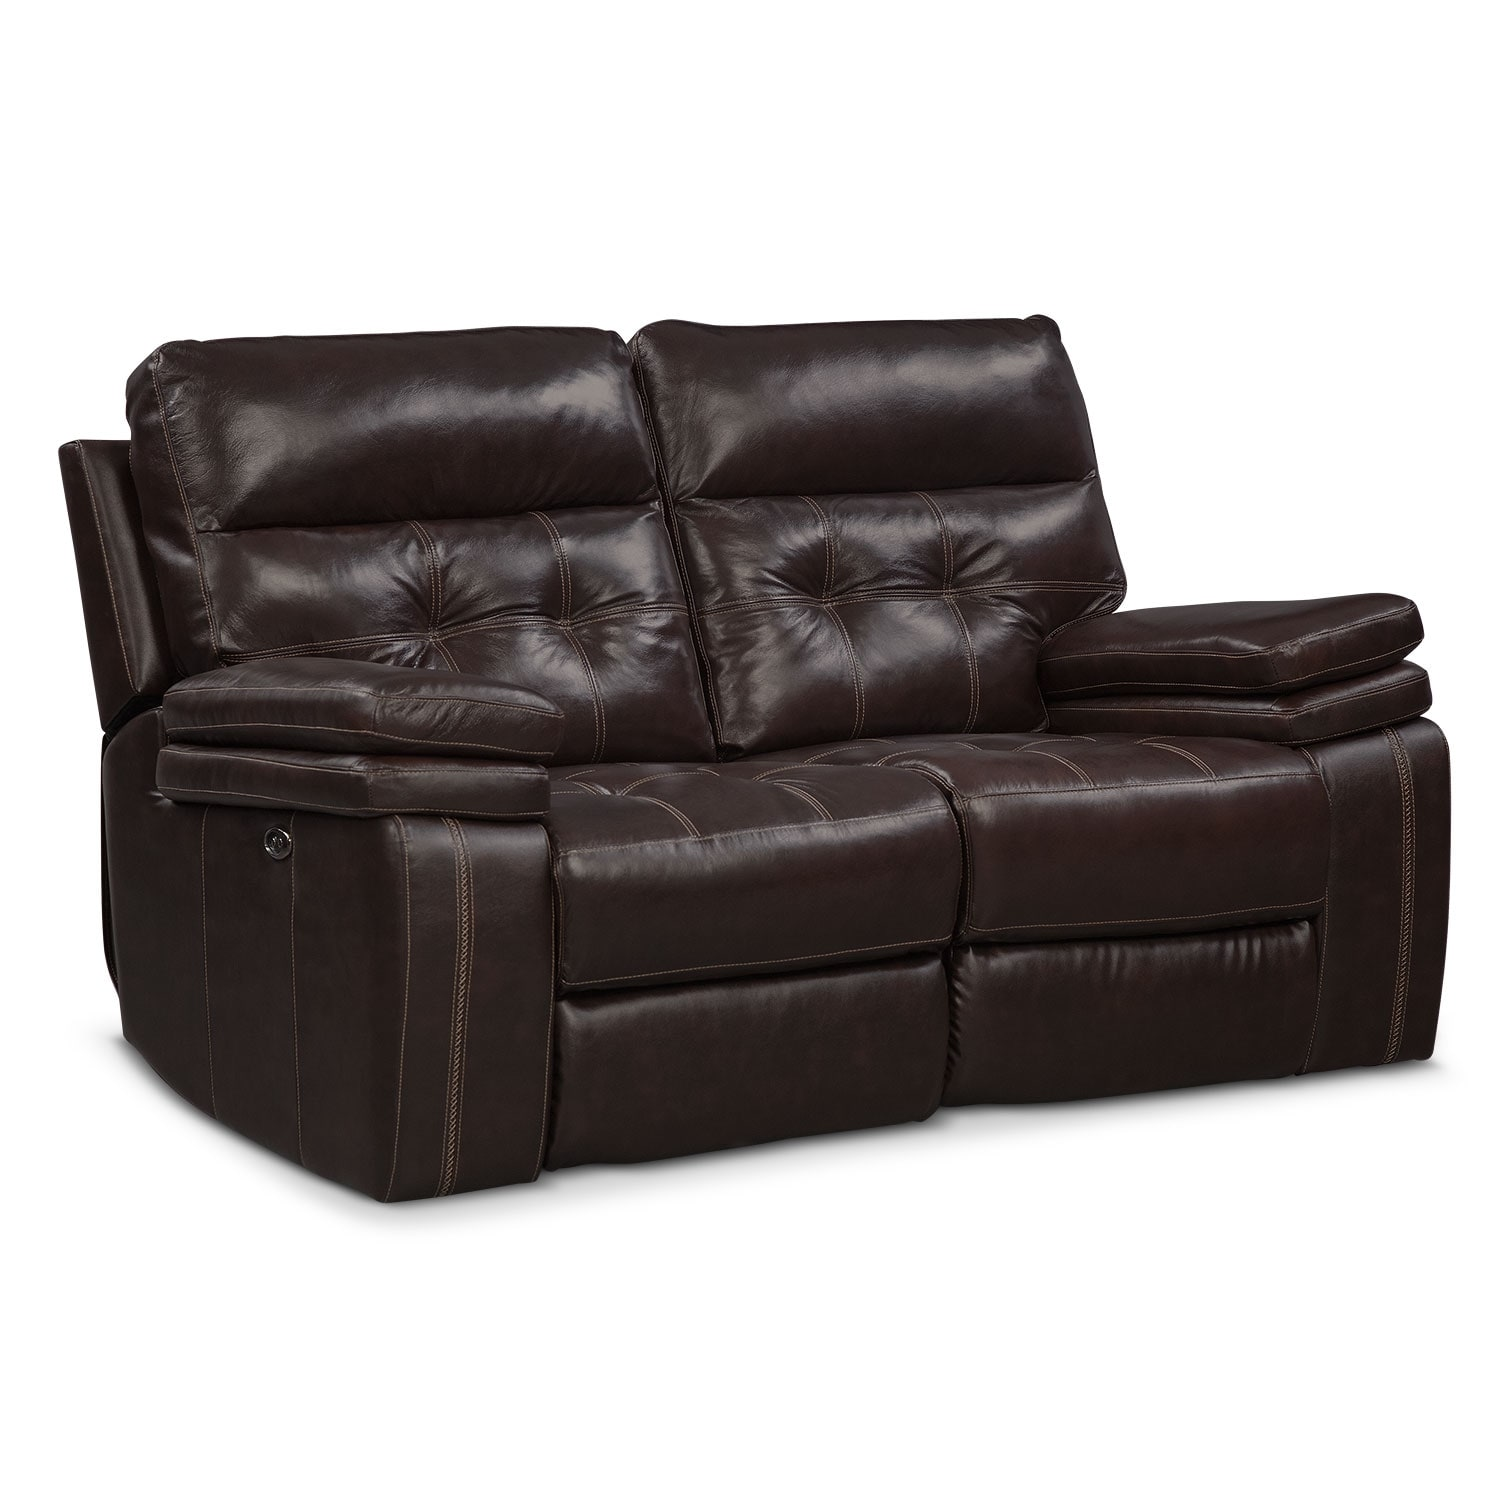 Living Room Furniture - Brisco Brown Power Reclining Loveseat